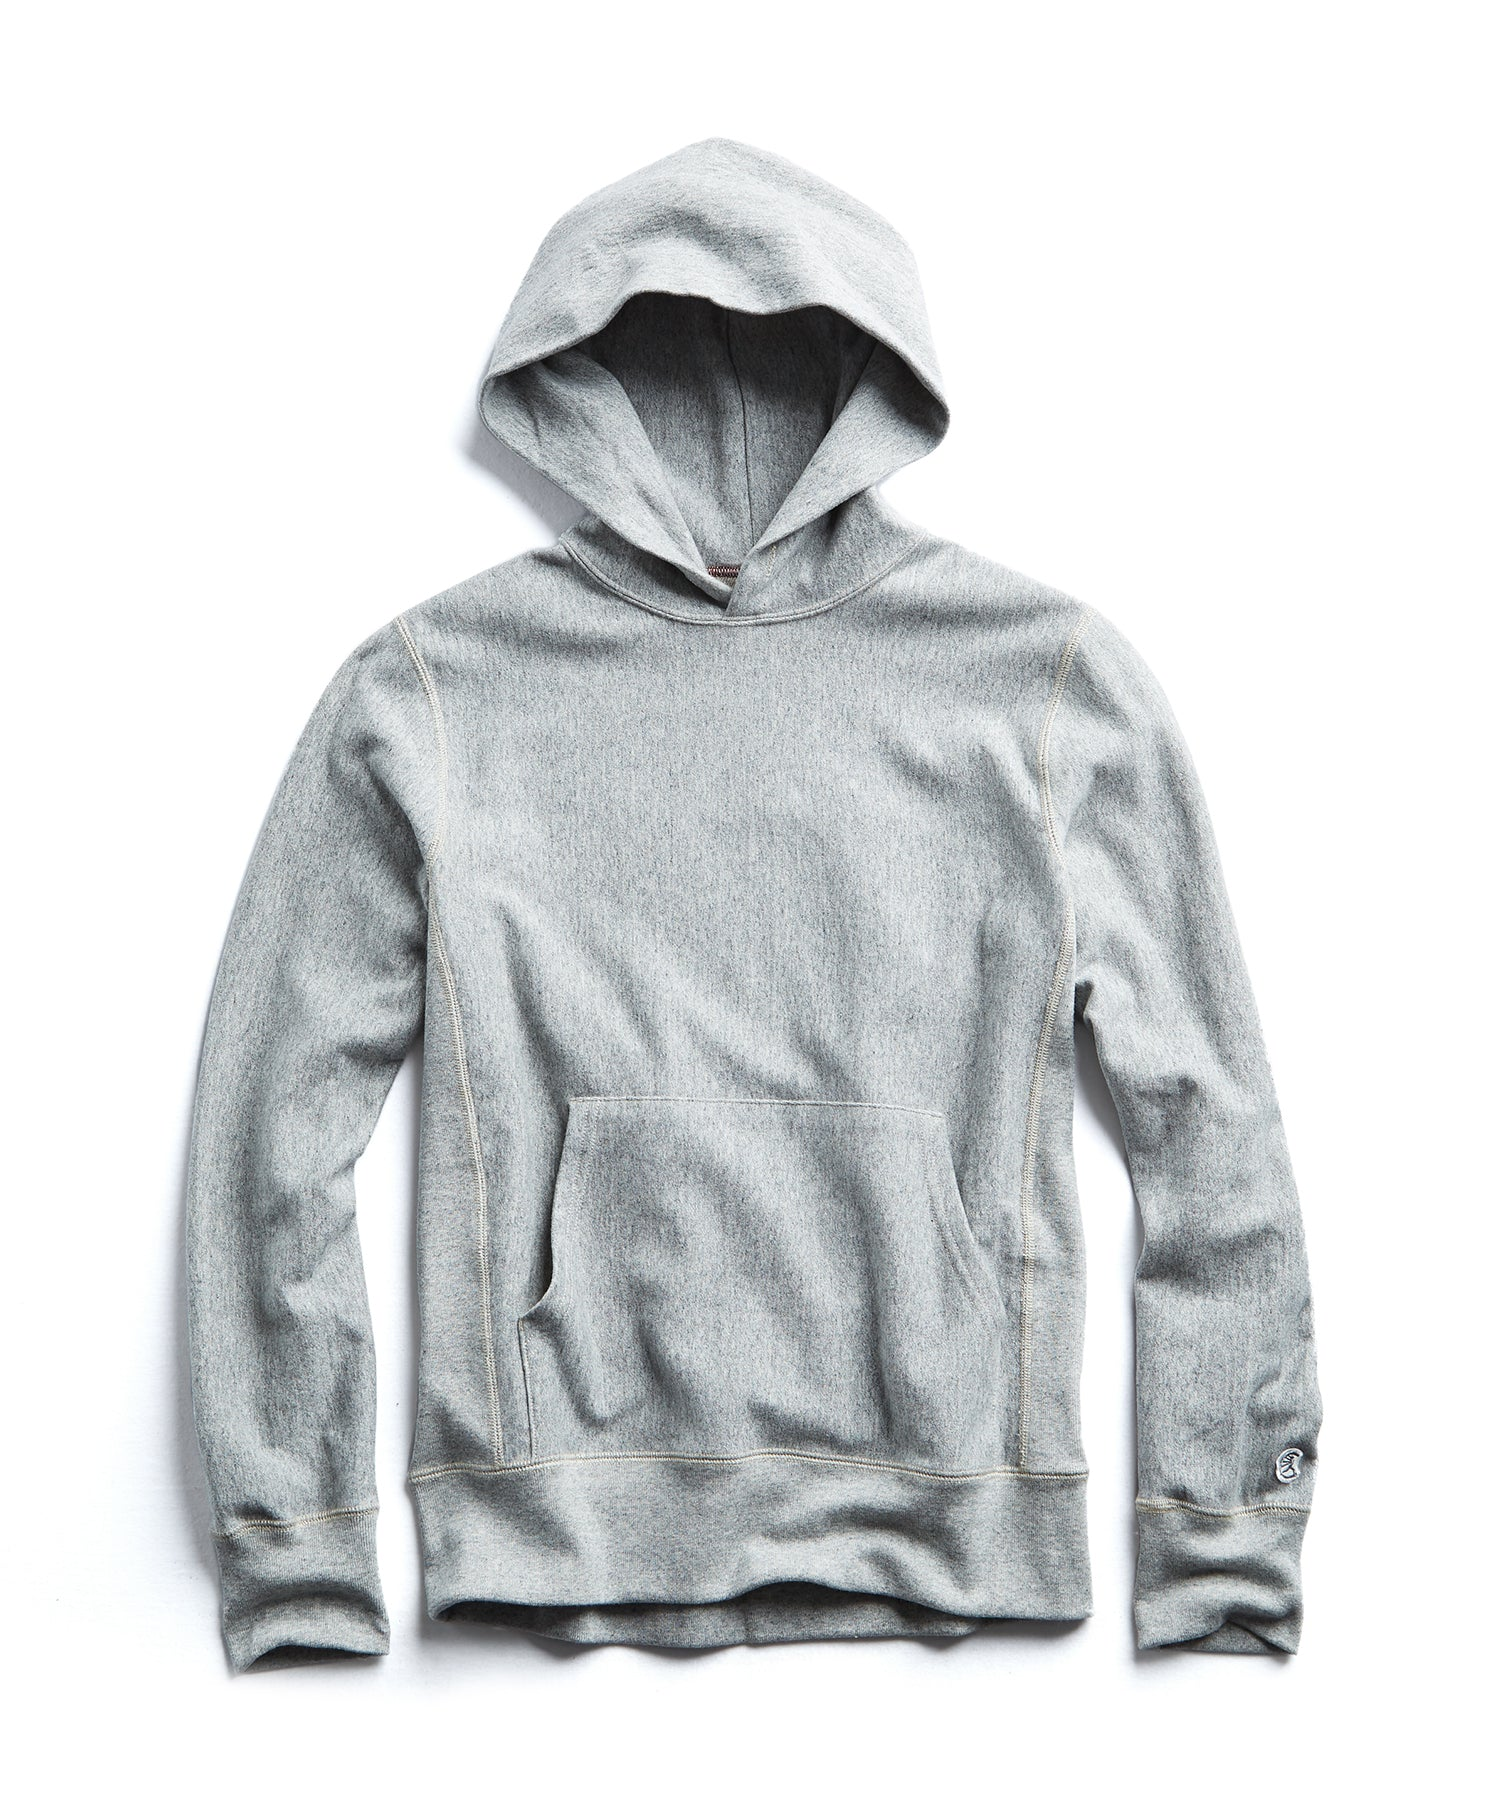 Terry Popover Hoodie Sweatshirt in Light Grey Mix